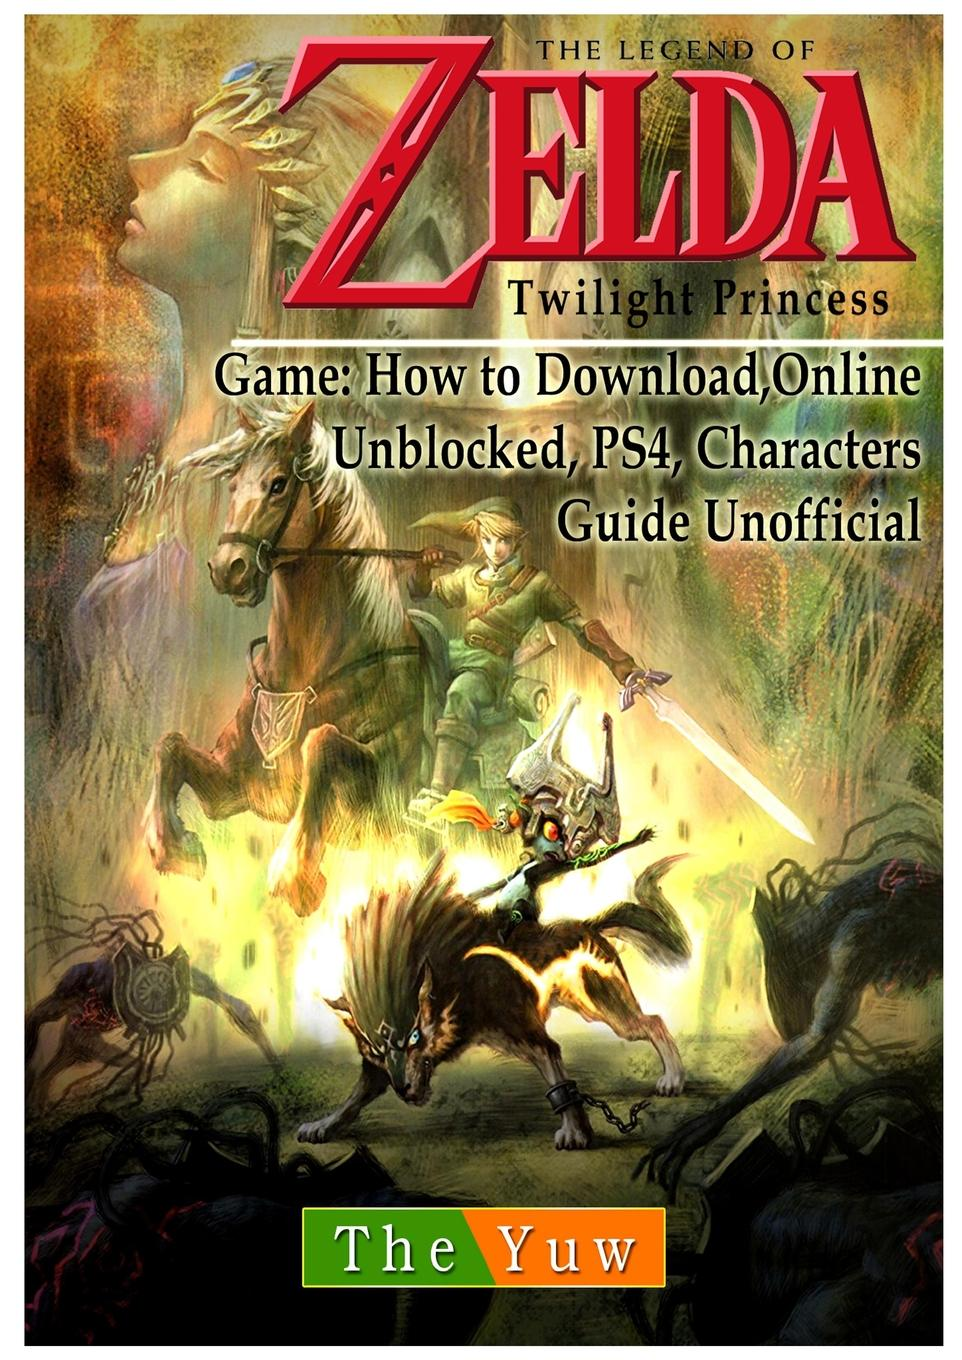 The Yuw Legend of Zelda Twilight Princess Game. Wii, Gamecube, 3DS, Walkthrough Guide Unofficial advanced game controller for gamecube ngc and wii black